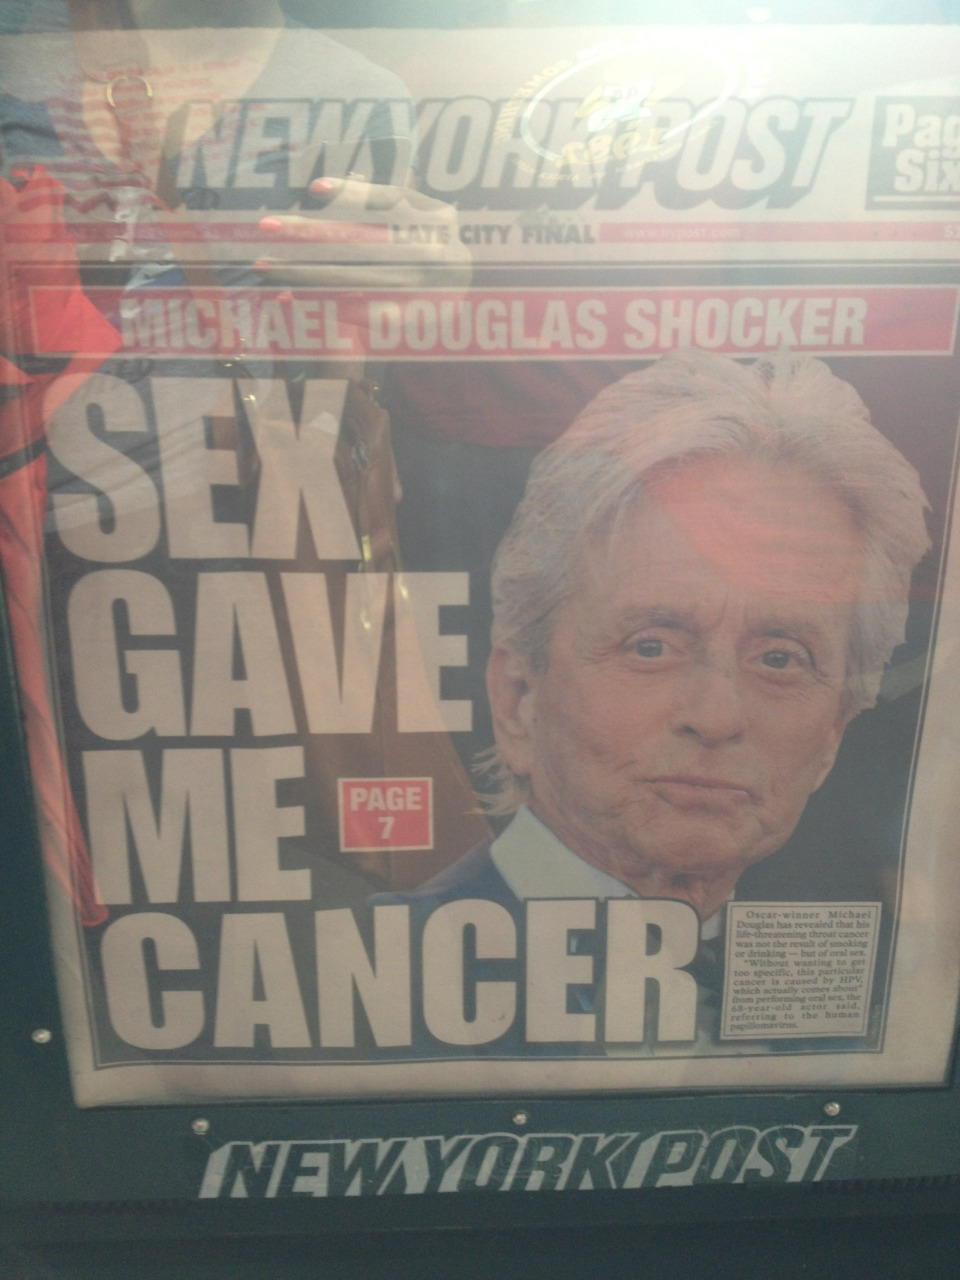 Keep it classy, NY Post.